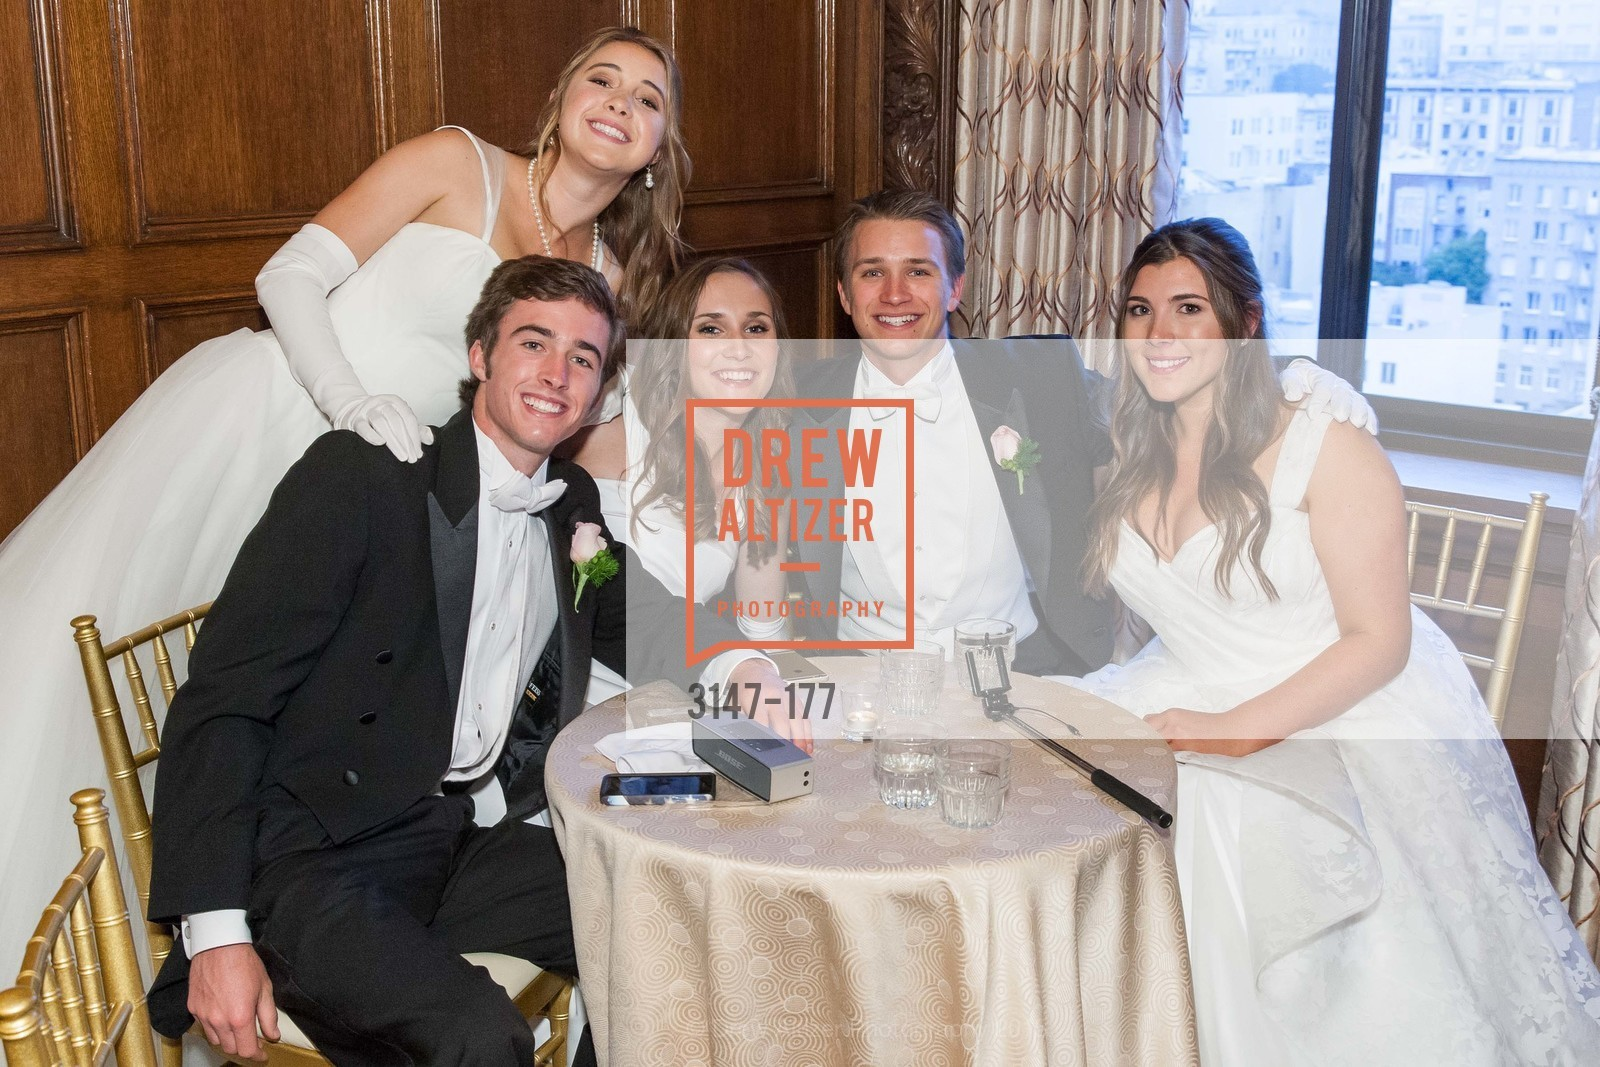 Joseph Jennison Ladd, Paloma Palmer, Connolly Grace Steigerwald, Ryan Nicholas Clark, Diana Laura Silvestri, The 2015 San Francisco Debutante Ball, The Westin St. Francis San Francisco Union Square. 335 Powell St, June 20th, 2015,Drew Altizer, Drew Altizer Photography, full-service agency, private events, San Francisco photographer, photographer california